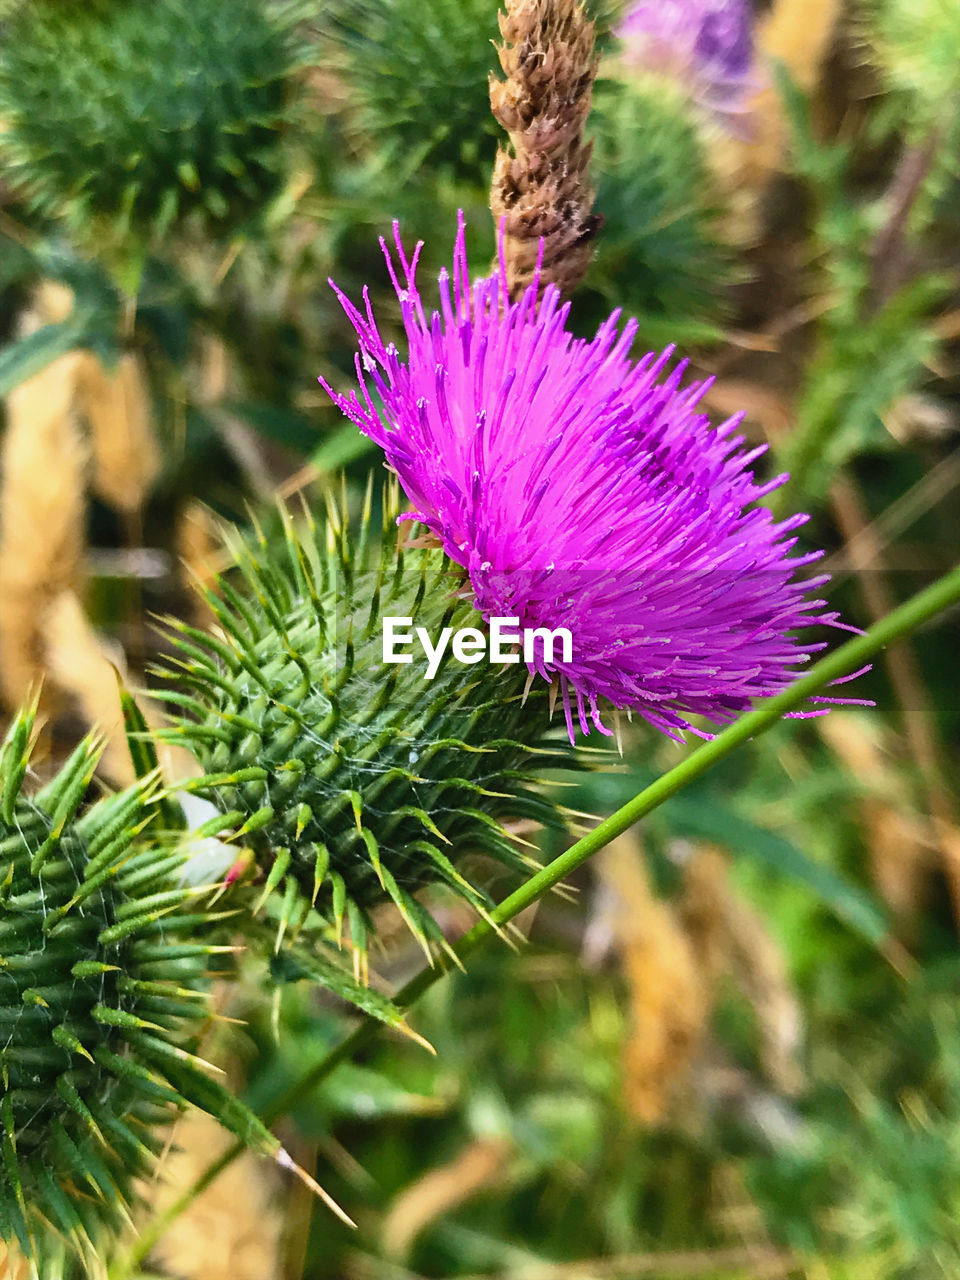 plant, growth, beauty in nature, freshness, close-up, flower, green color, flowering plant, no people, nature, vulnerability, focus on foreground, day, fragility, pink color, inflorescence, flower head, purple, leaf, thistle, outdoors, spiky